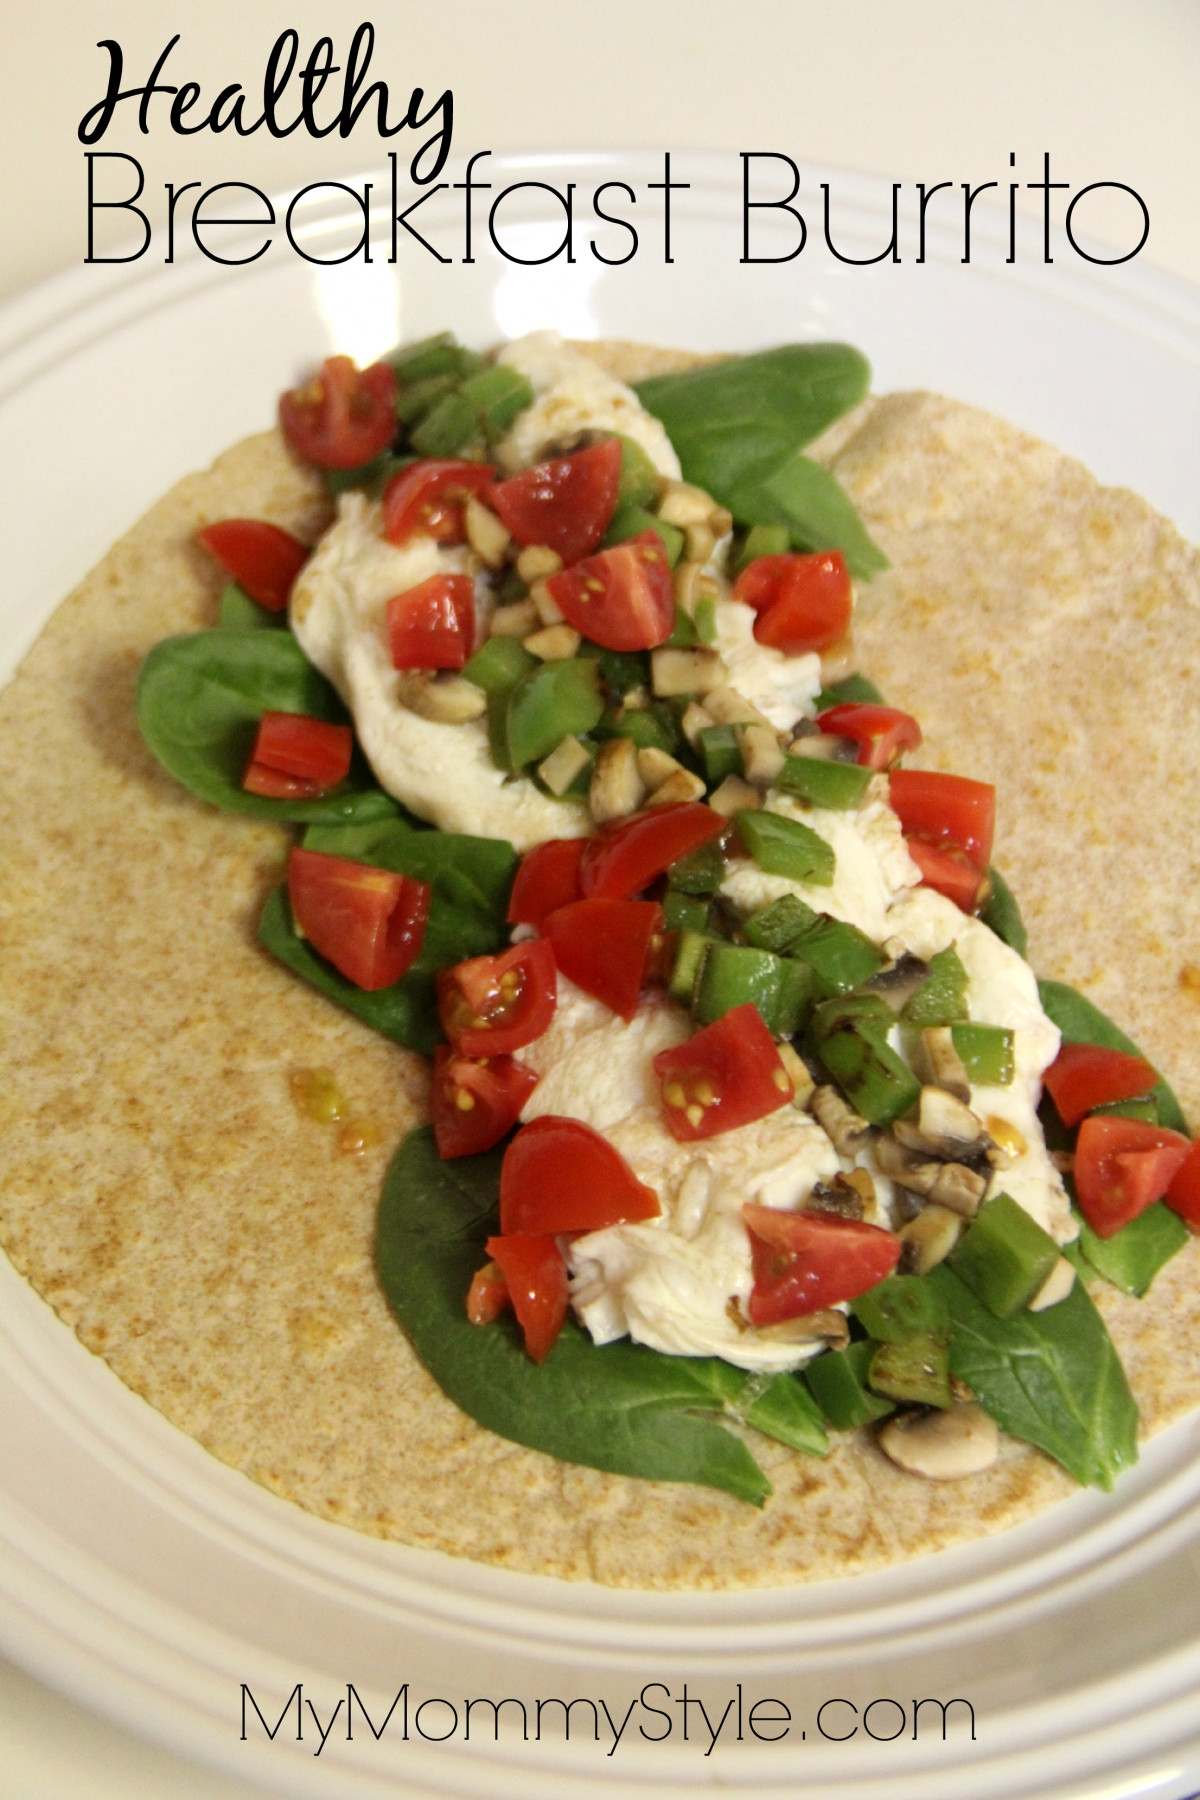 Are Burritos Healthy  Healthy Breakfast Burrito My Mommy Style